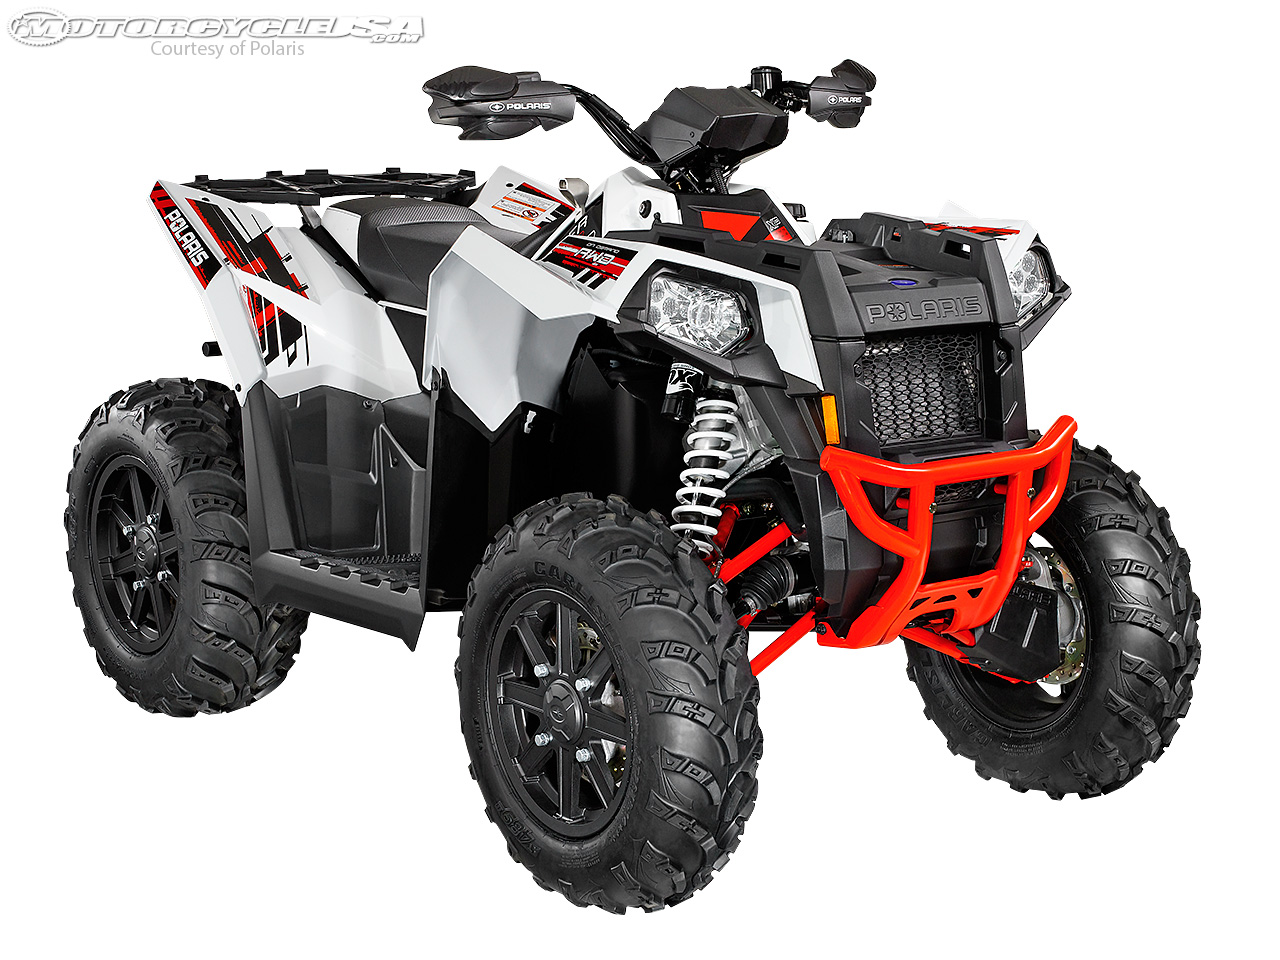 Polaris Scrambler 90 images #120603